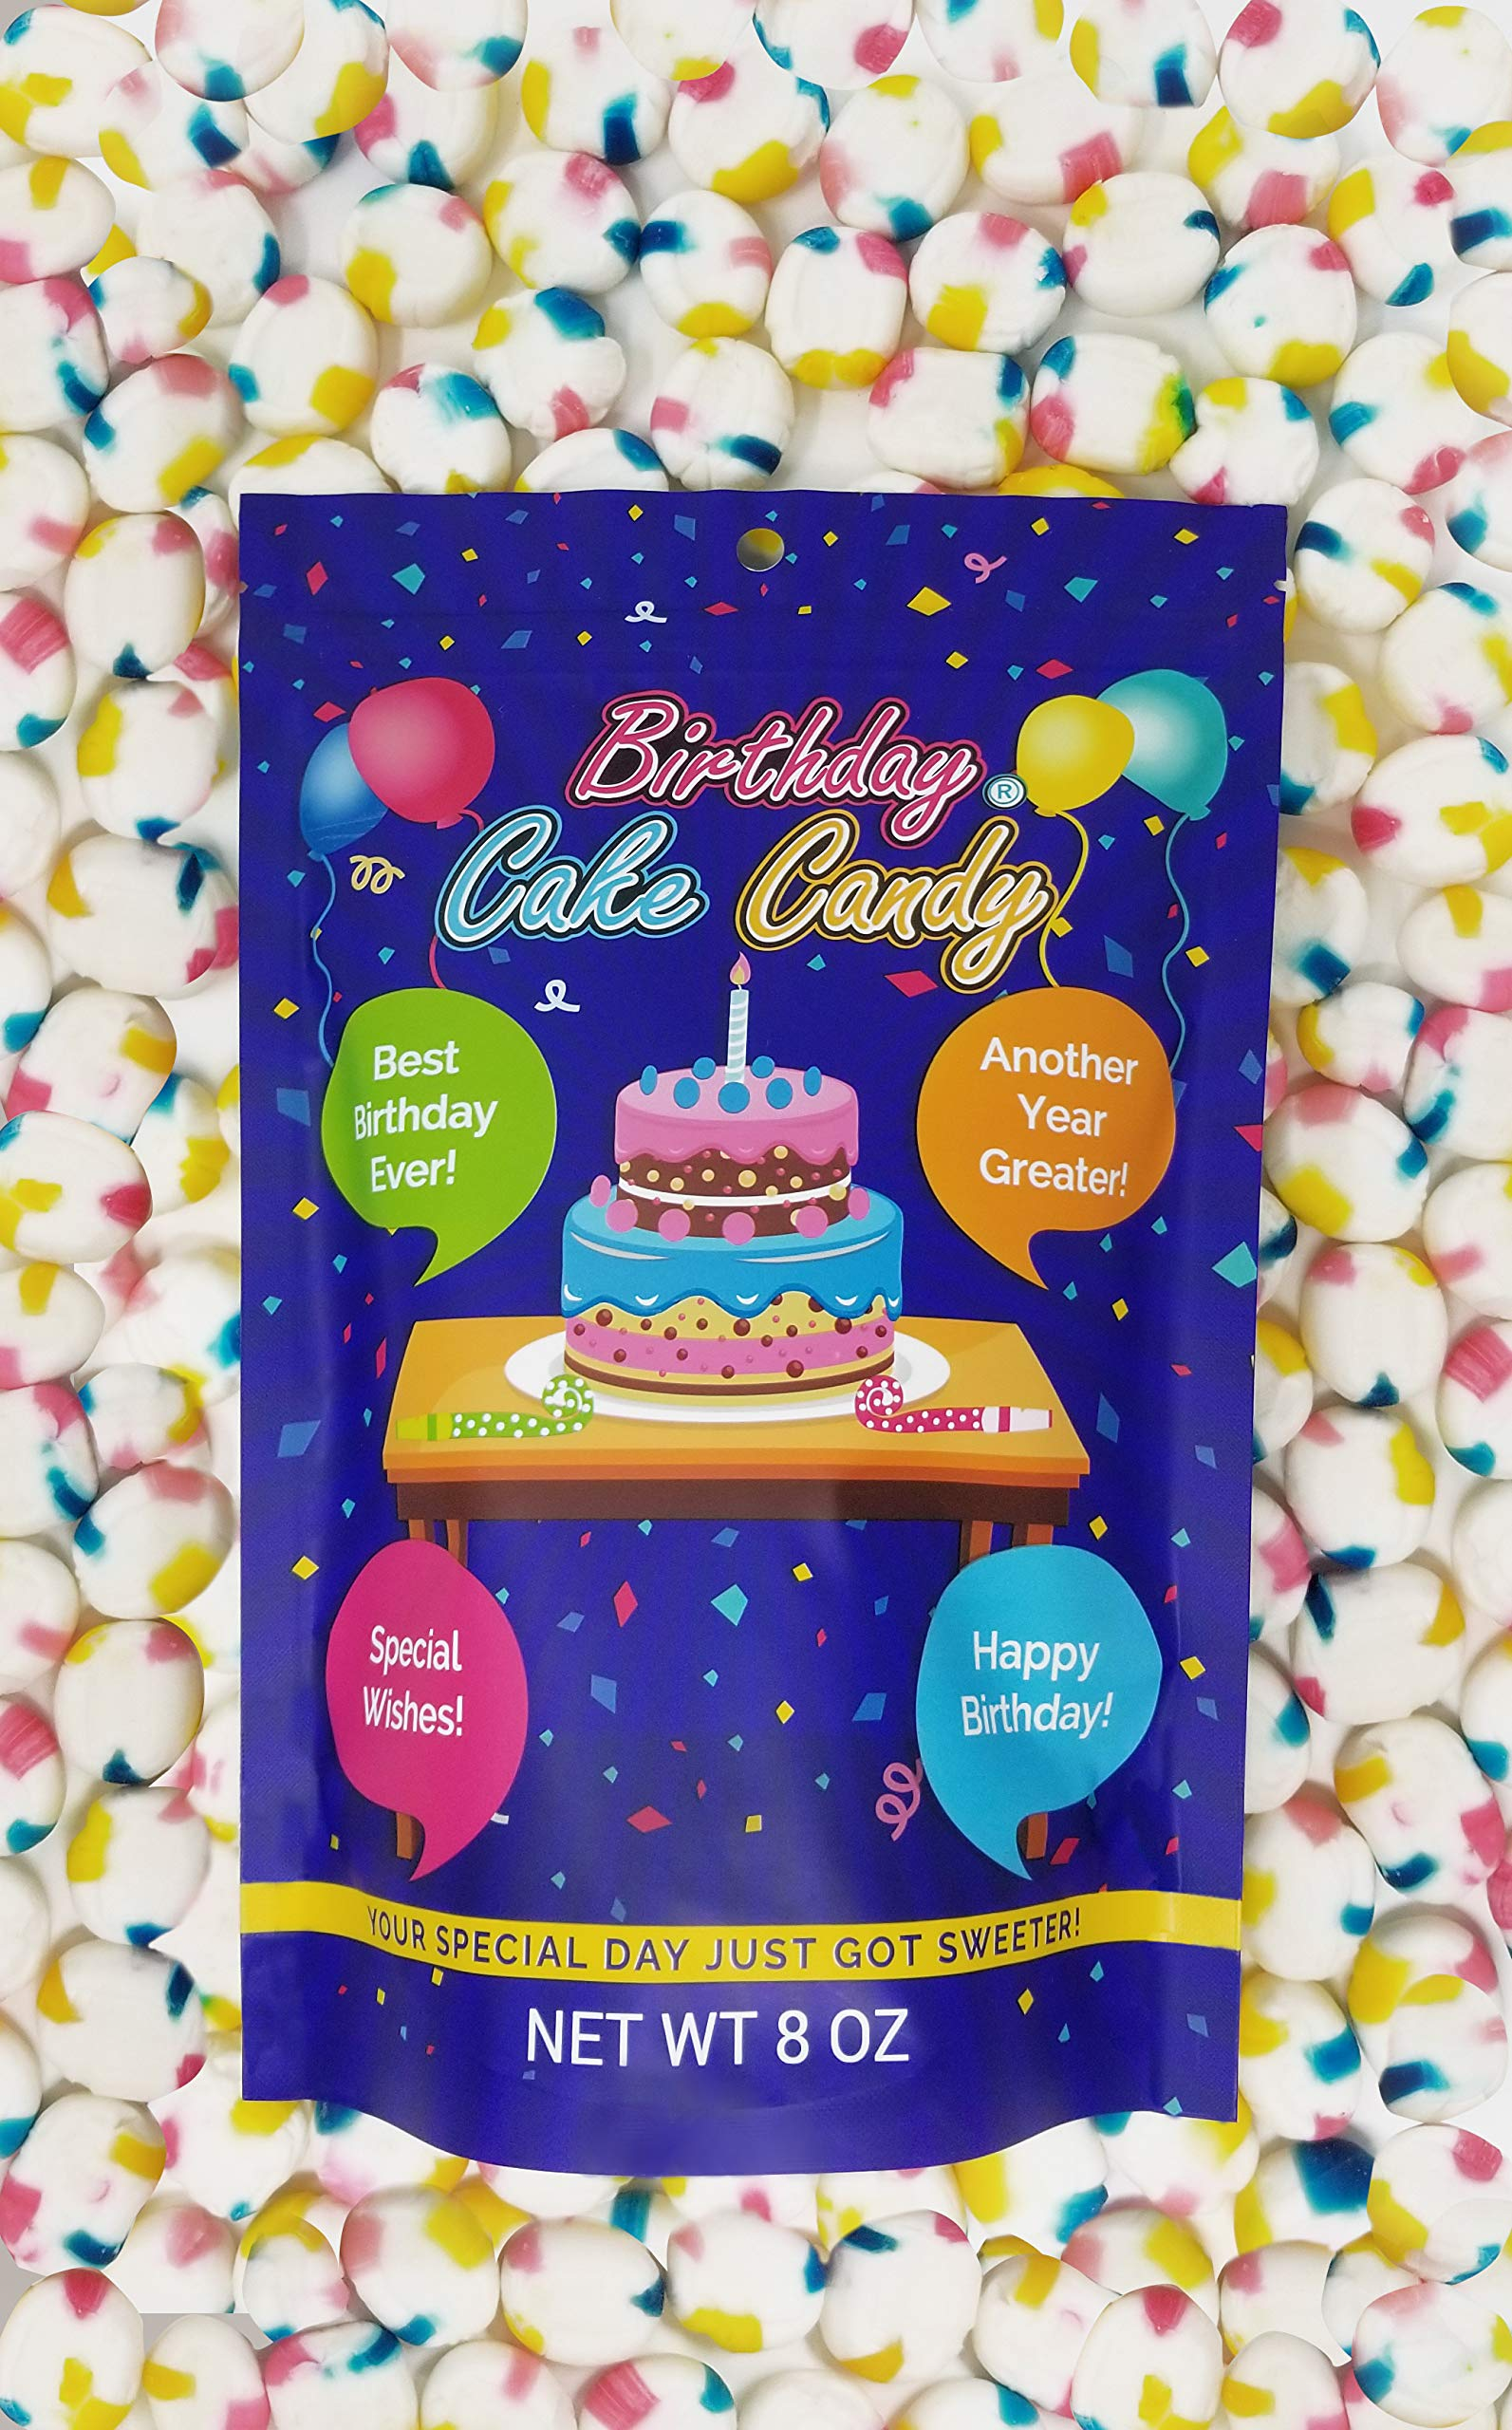 Amazon Happy Birthday Cake Flavored Candy Gluten Free Treats For Parties Party Bags Present Boxes Buffet Tables